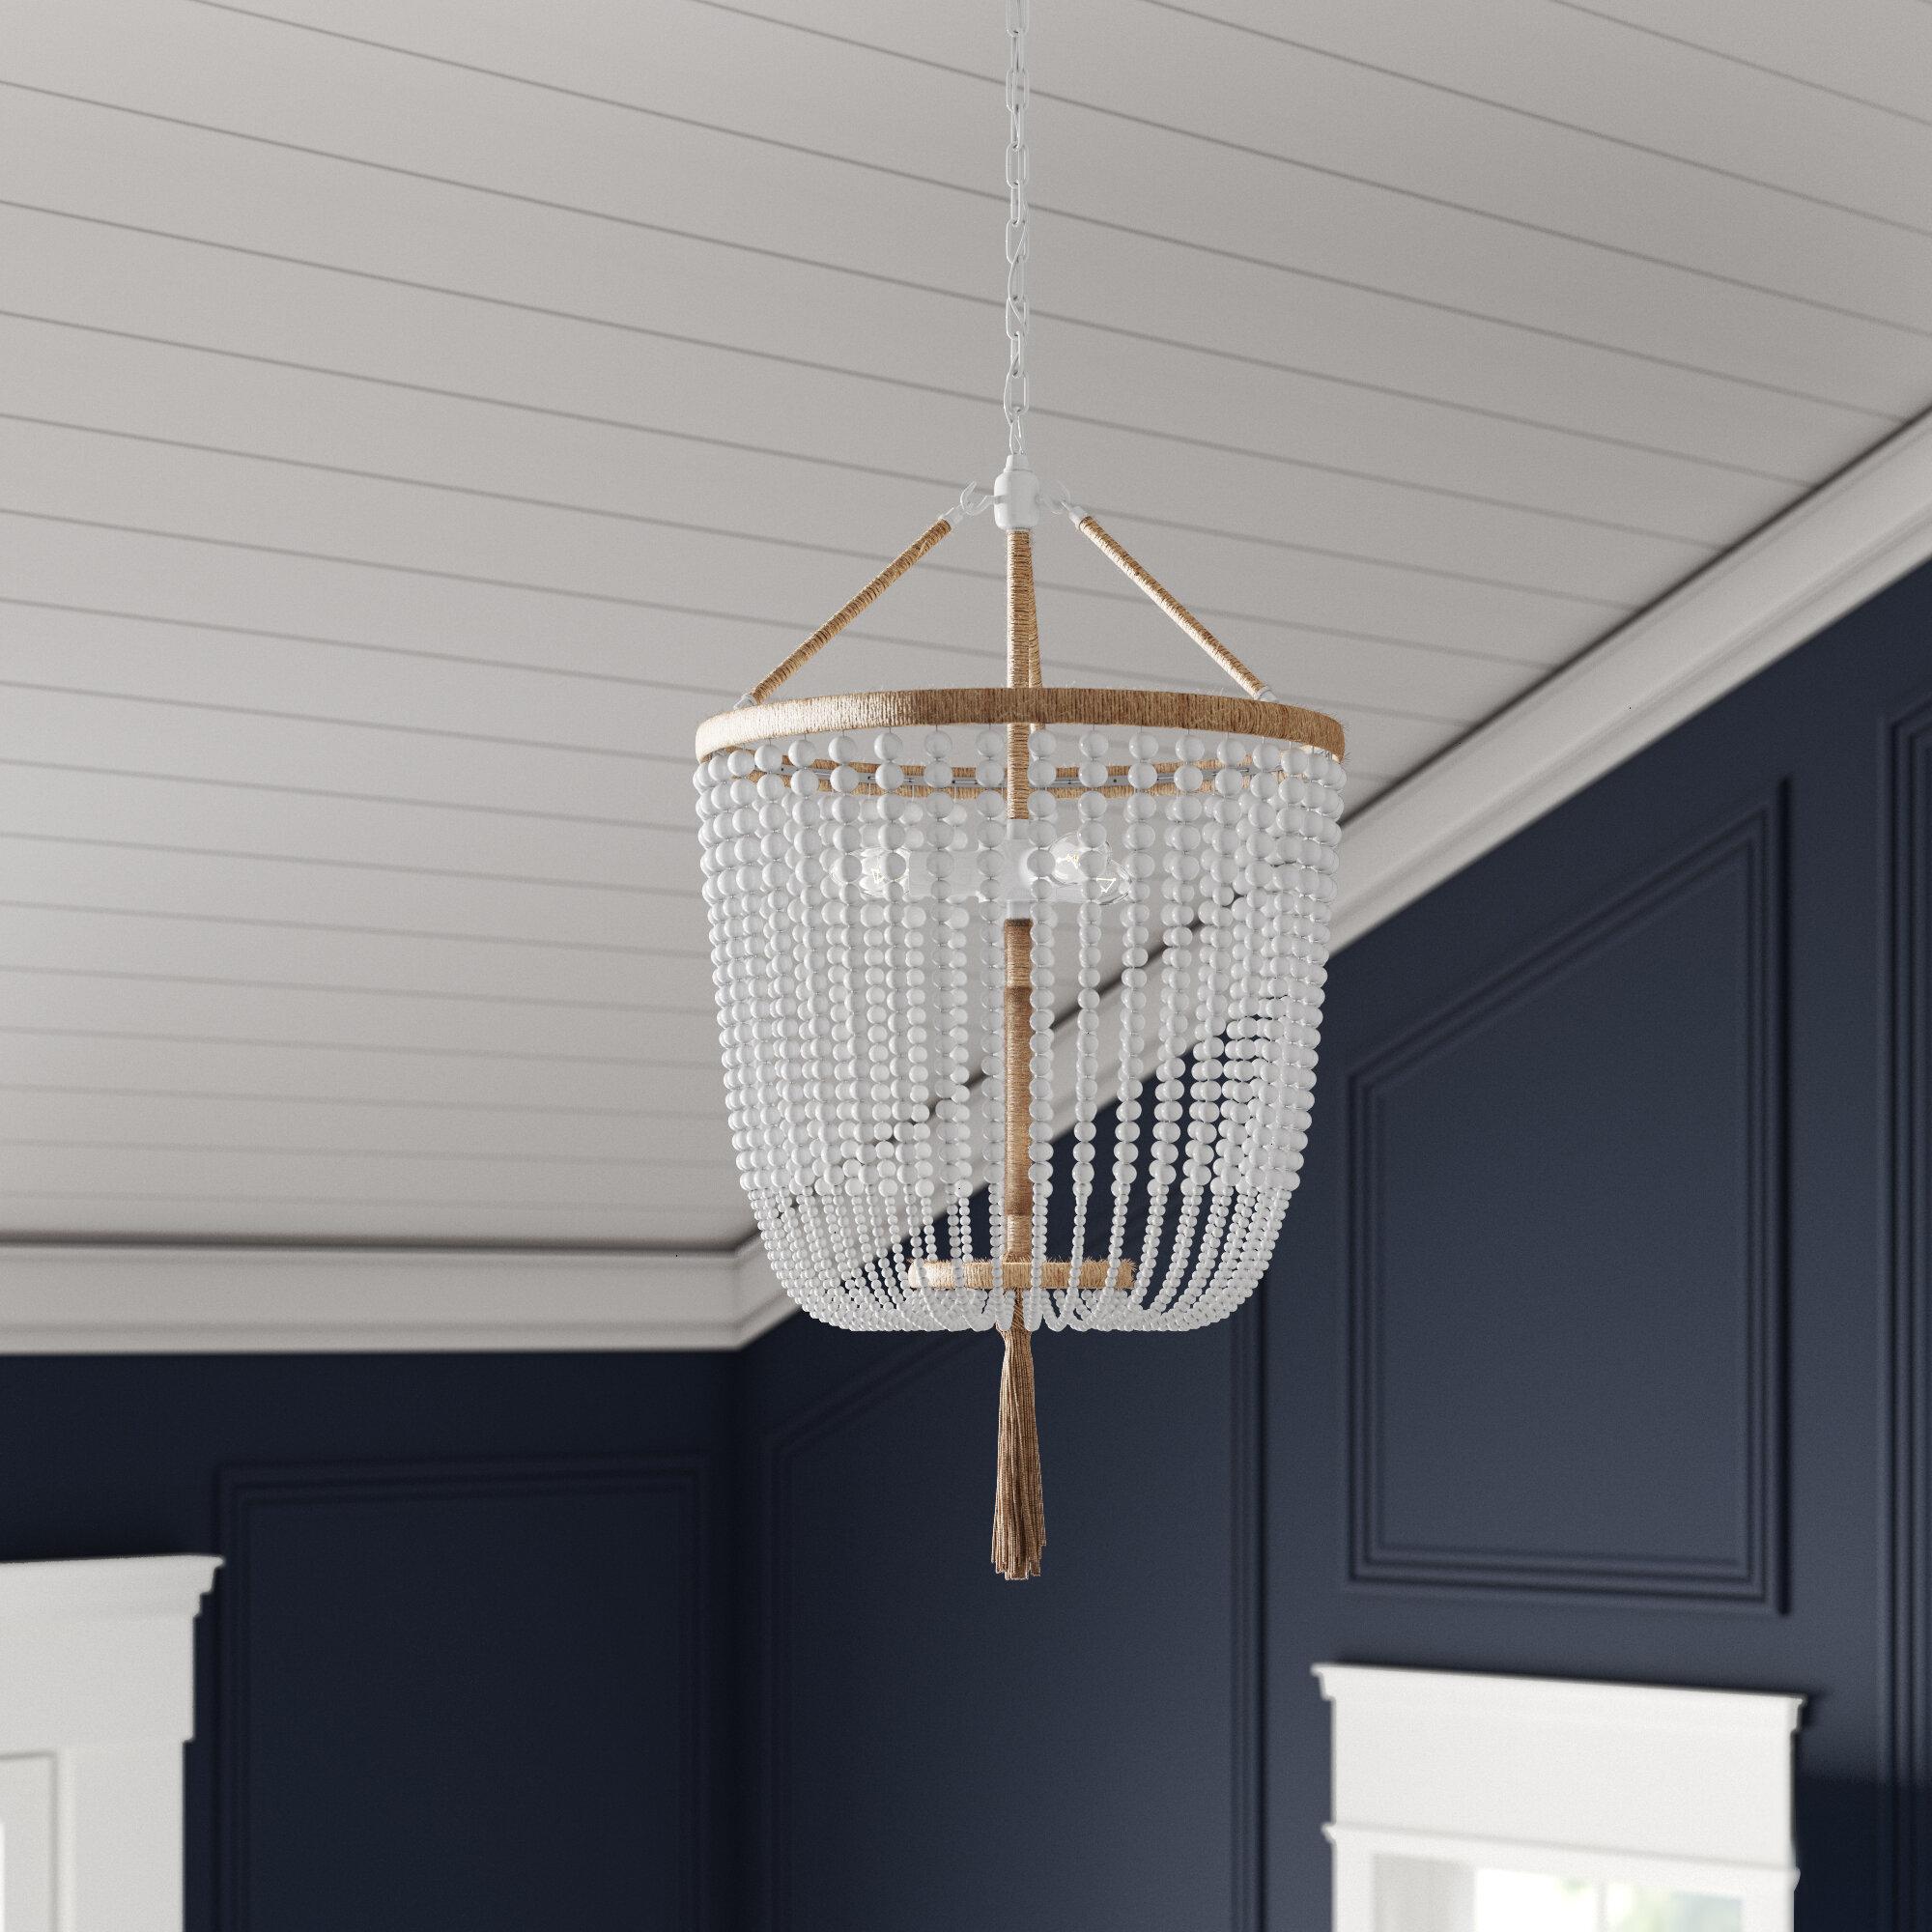 Leyva 3-Light Single Urn Pendant intended for 3-Light Single Urn Pendants (Image 21 of 30)